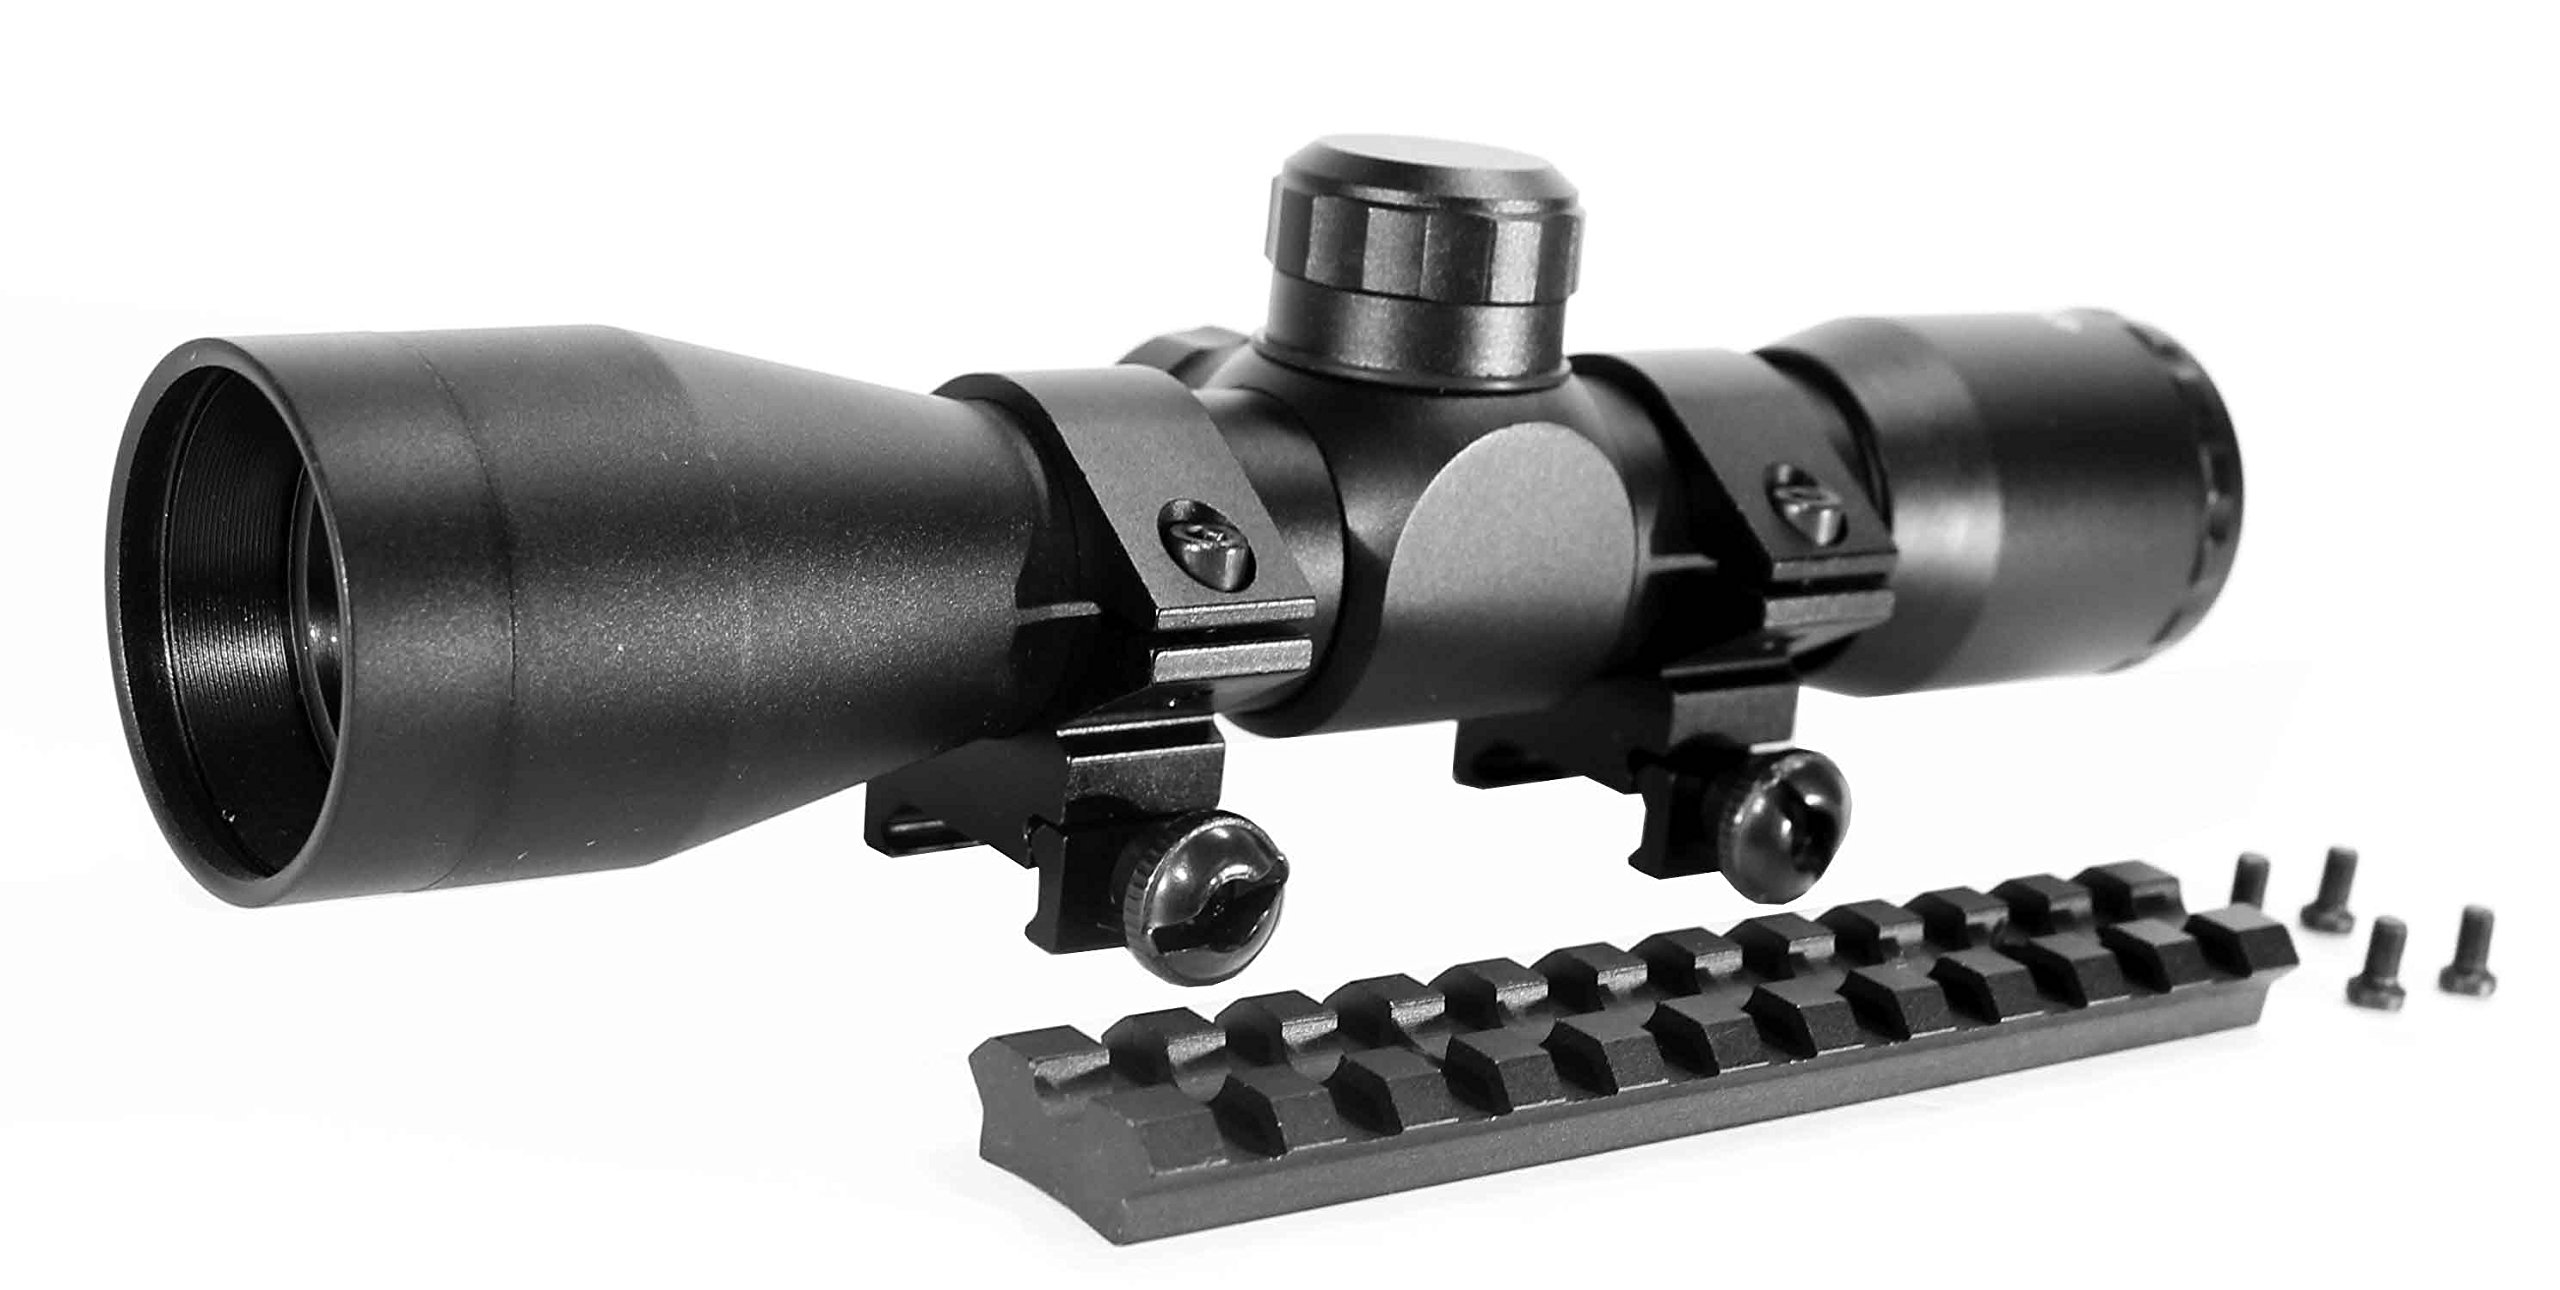 Trinity Sniper 4x32 Sight for Ruger 10/22 Picatinny Weaver Base Mount Adapter Aluminum Black Tactical Optics Hunting Accessory mildot Reticle Target Range Gear Single Rail. by Trinity